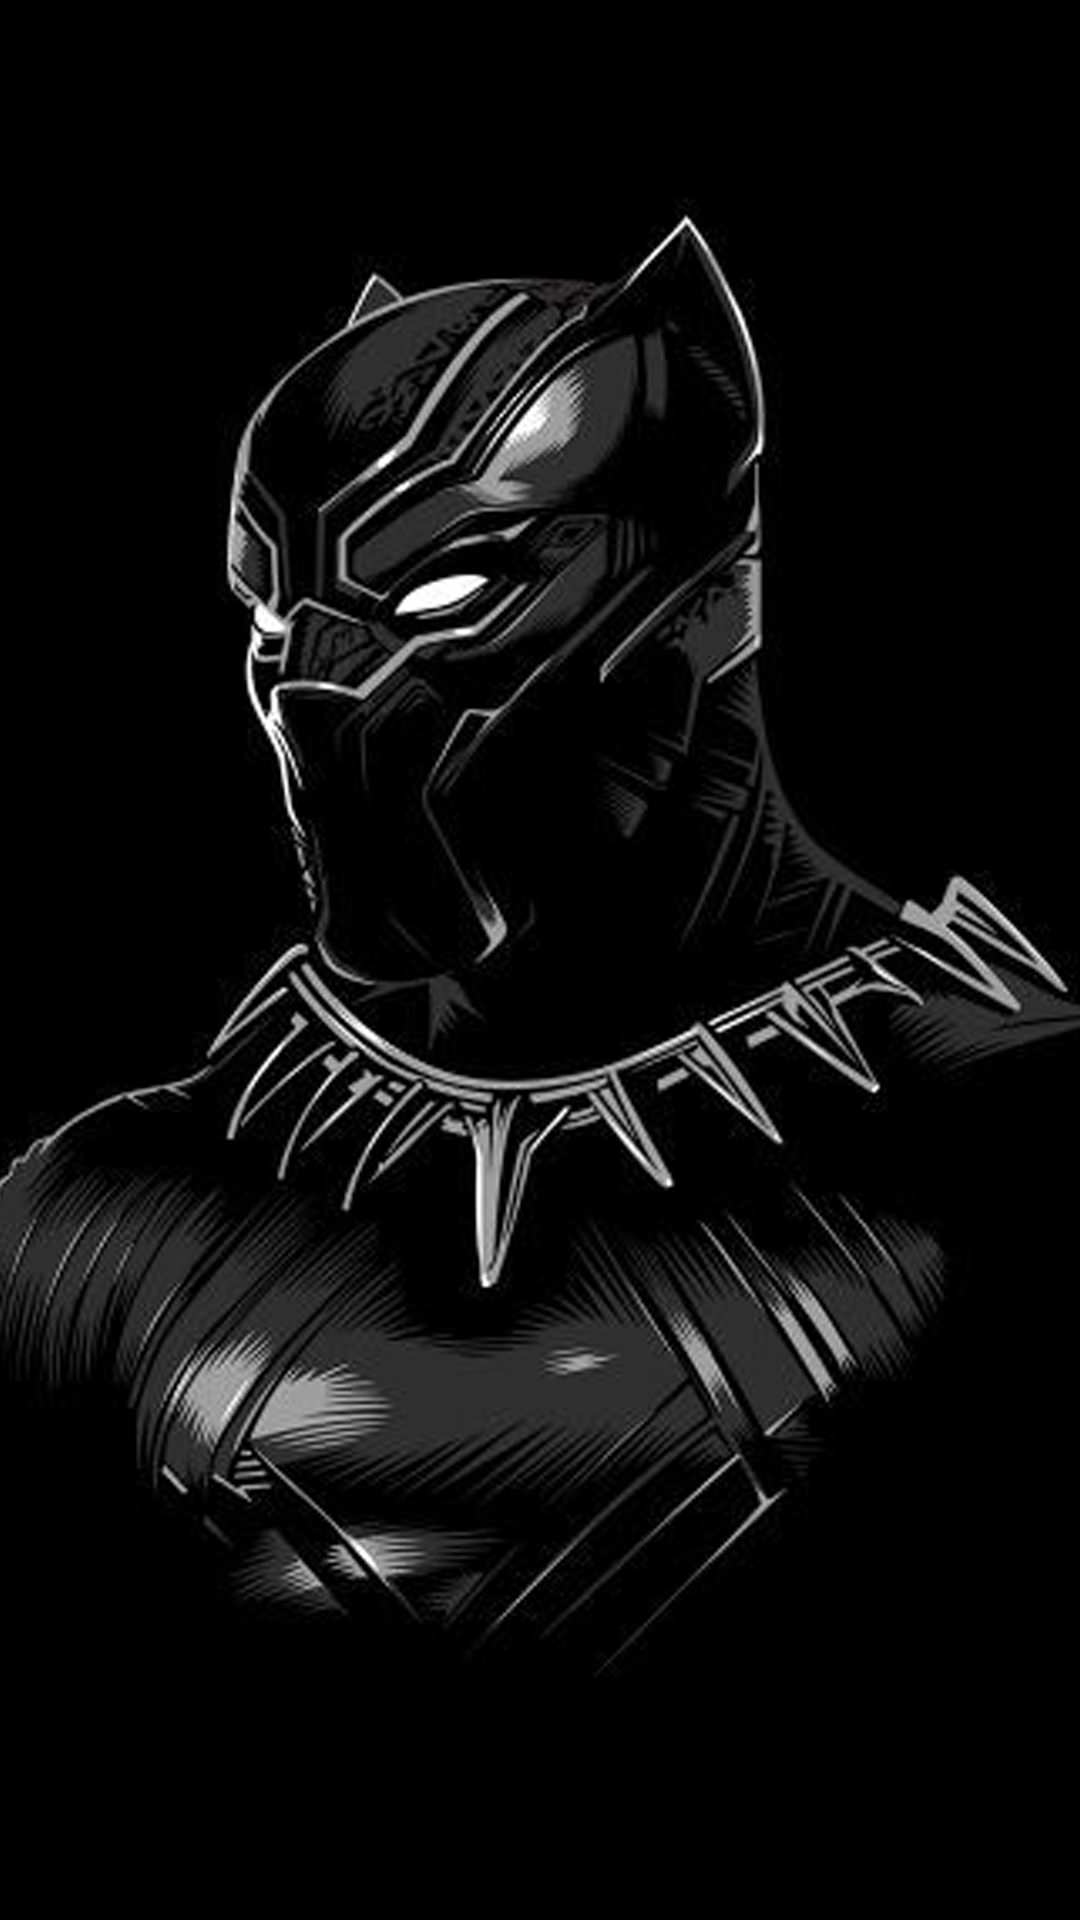 Iphone Wallpaper Hd Black Panther